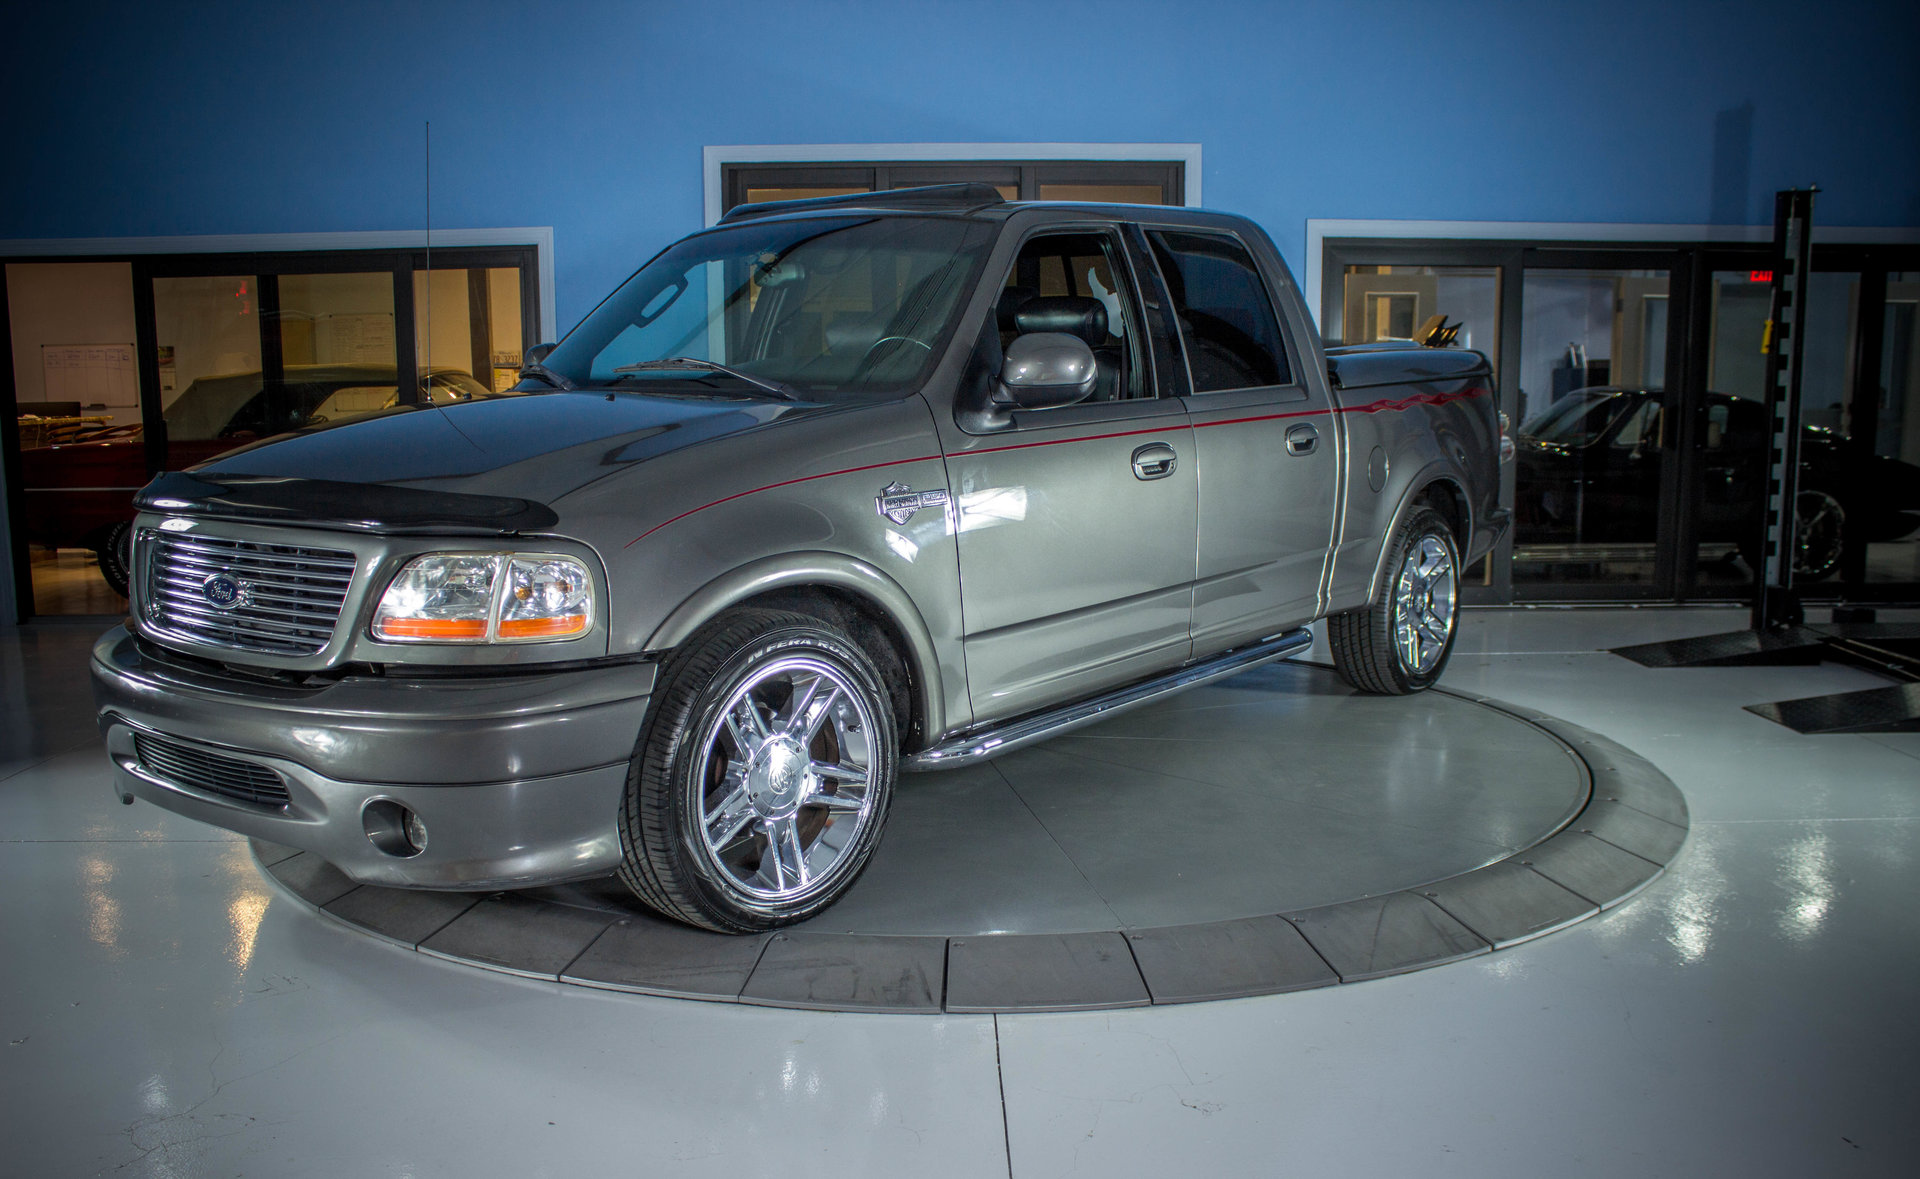 2002 ford f150 classic cars used cars for sale in tampa fl. Black Bedroom Furniture Sets. Home Design Ideas